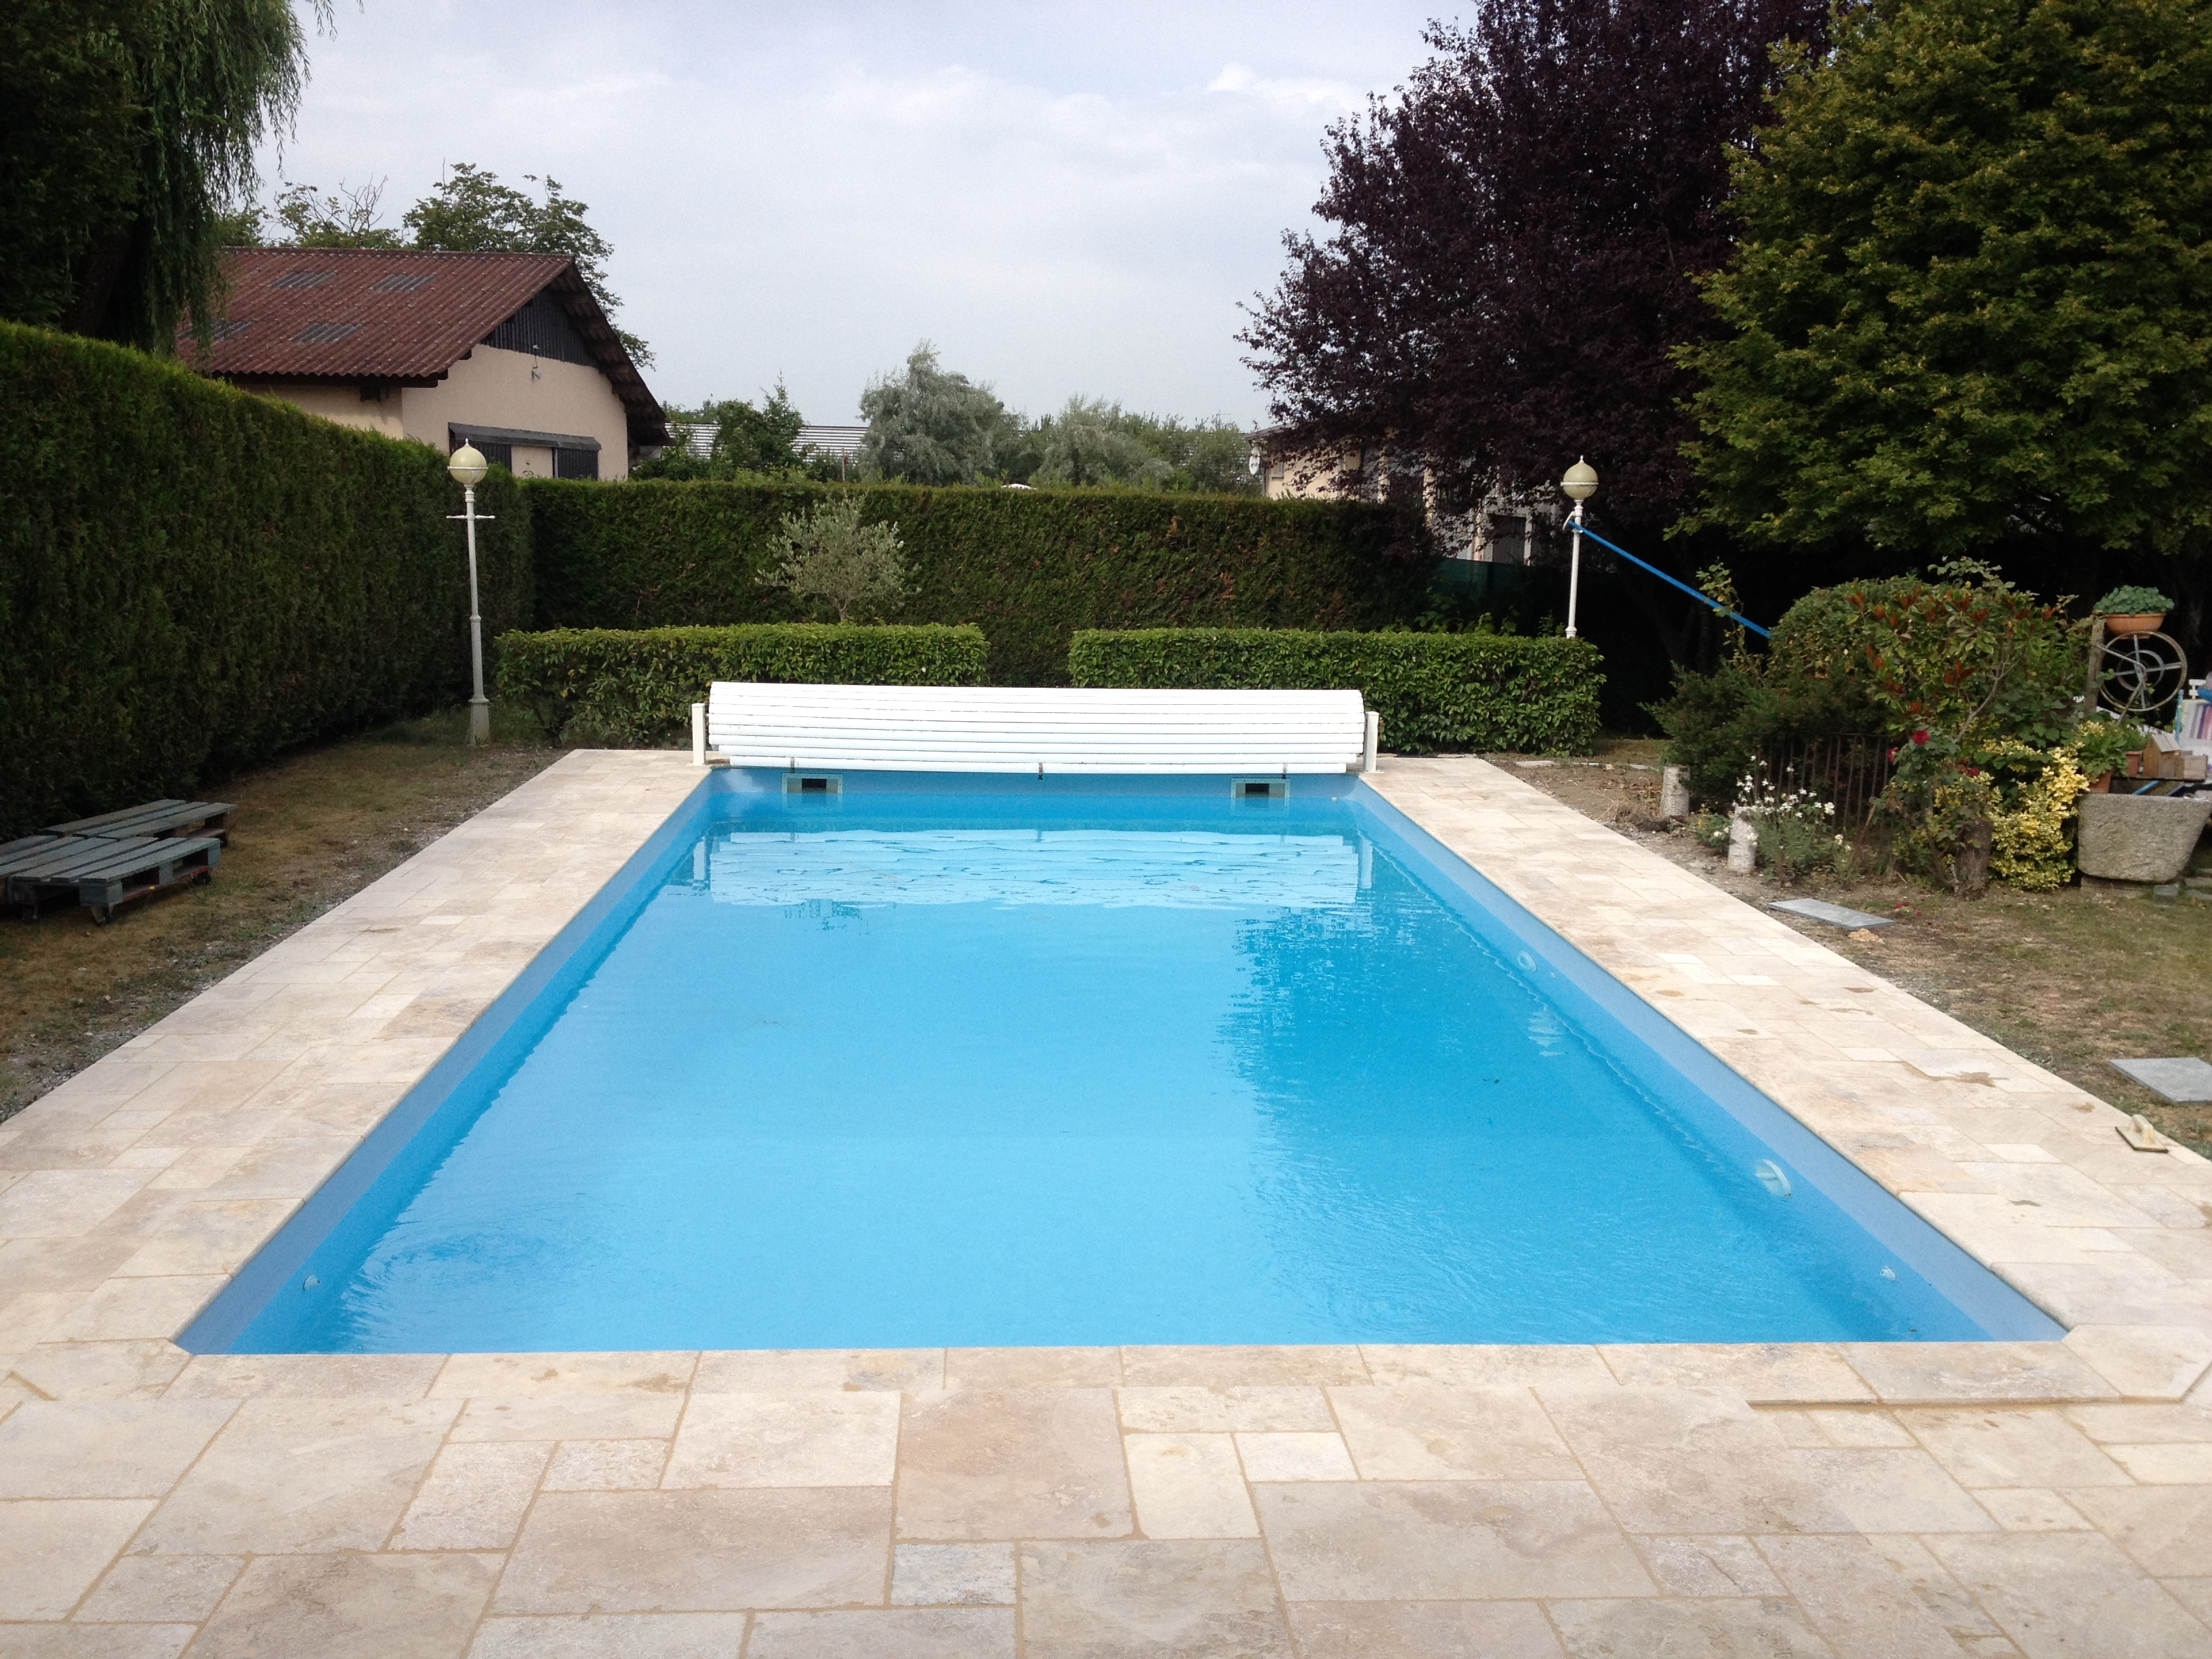 Piscines reflet carrelage for Carrelage piscine